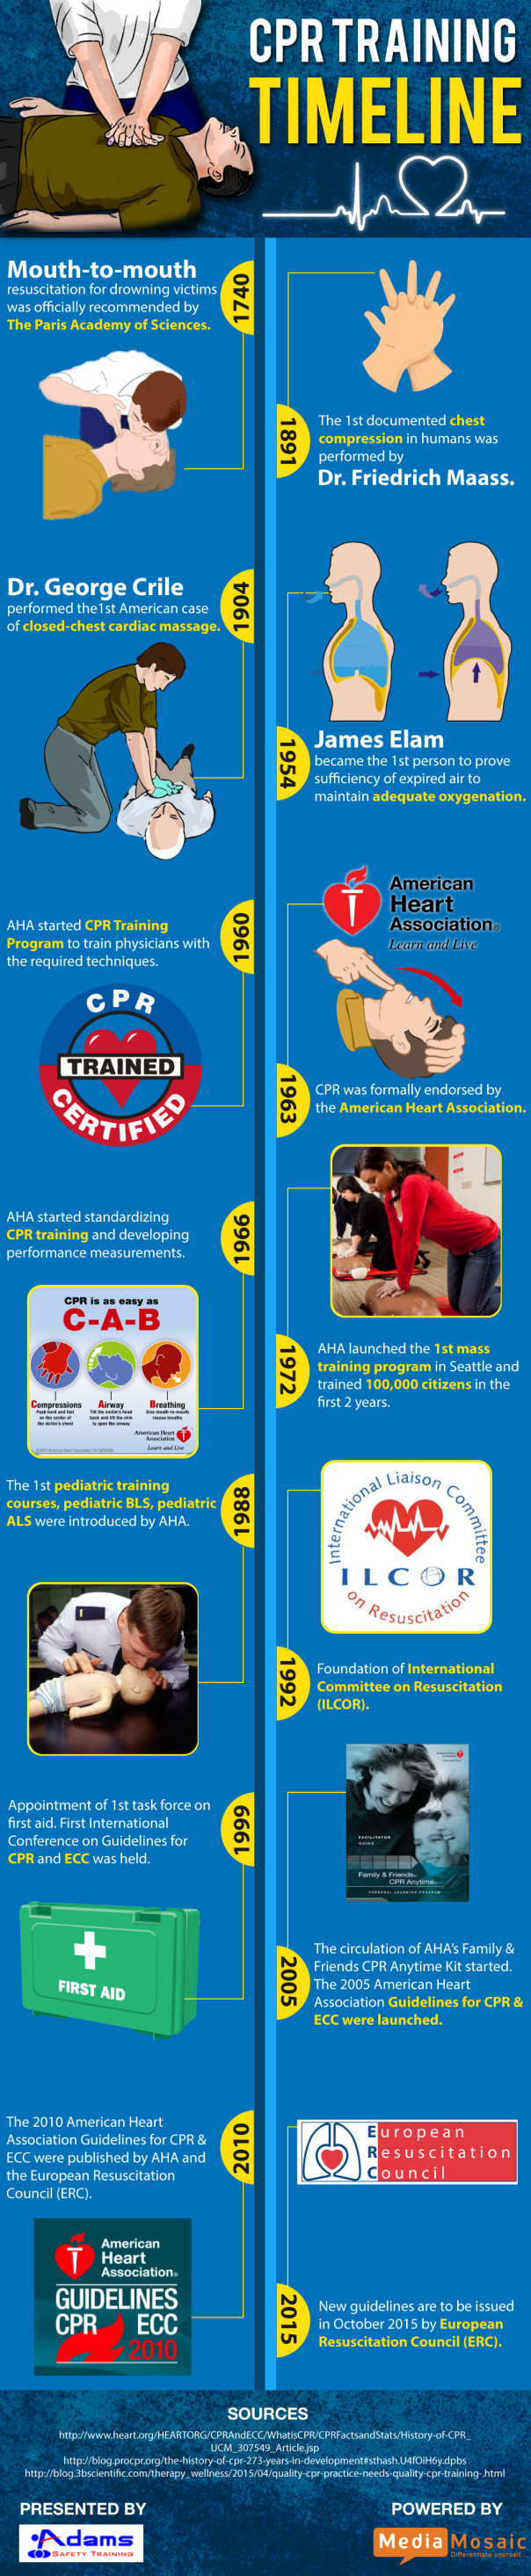 CPR Training Timeline